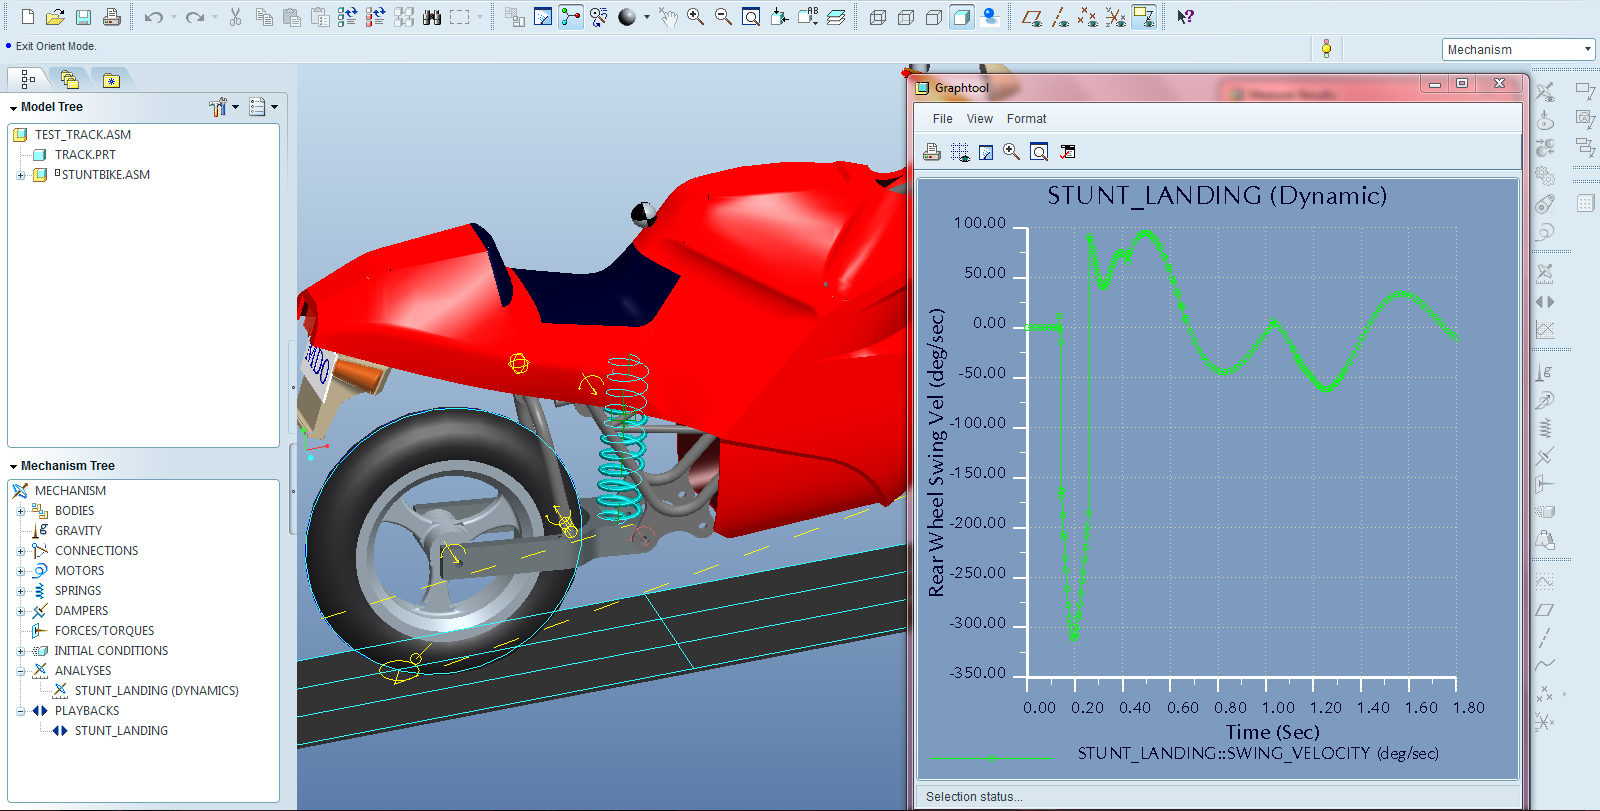 Motorcycle Case Study